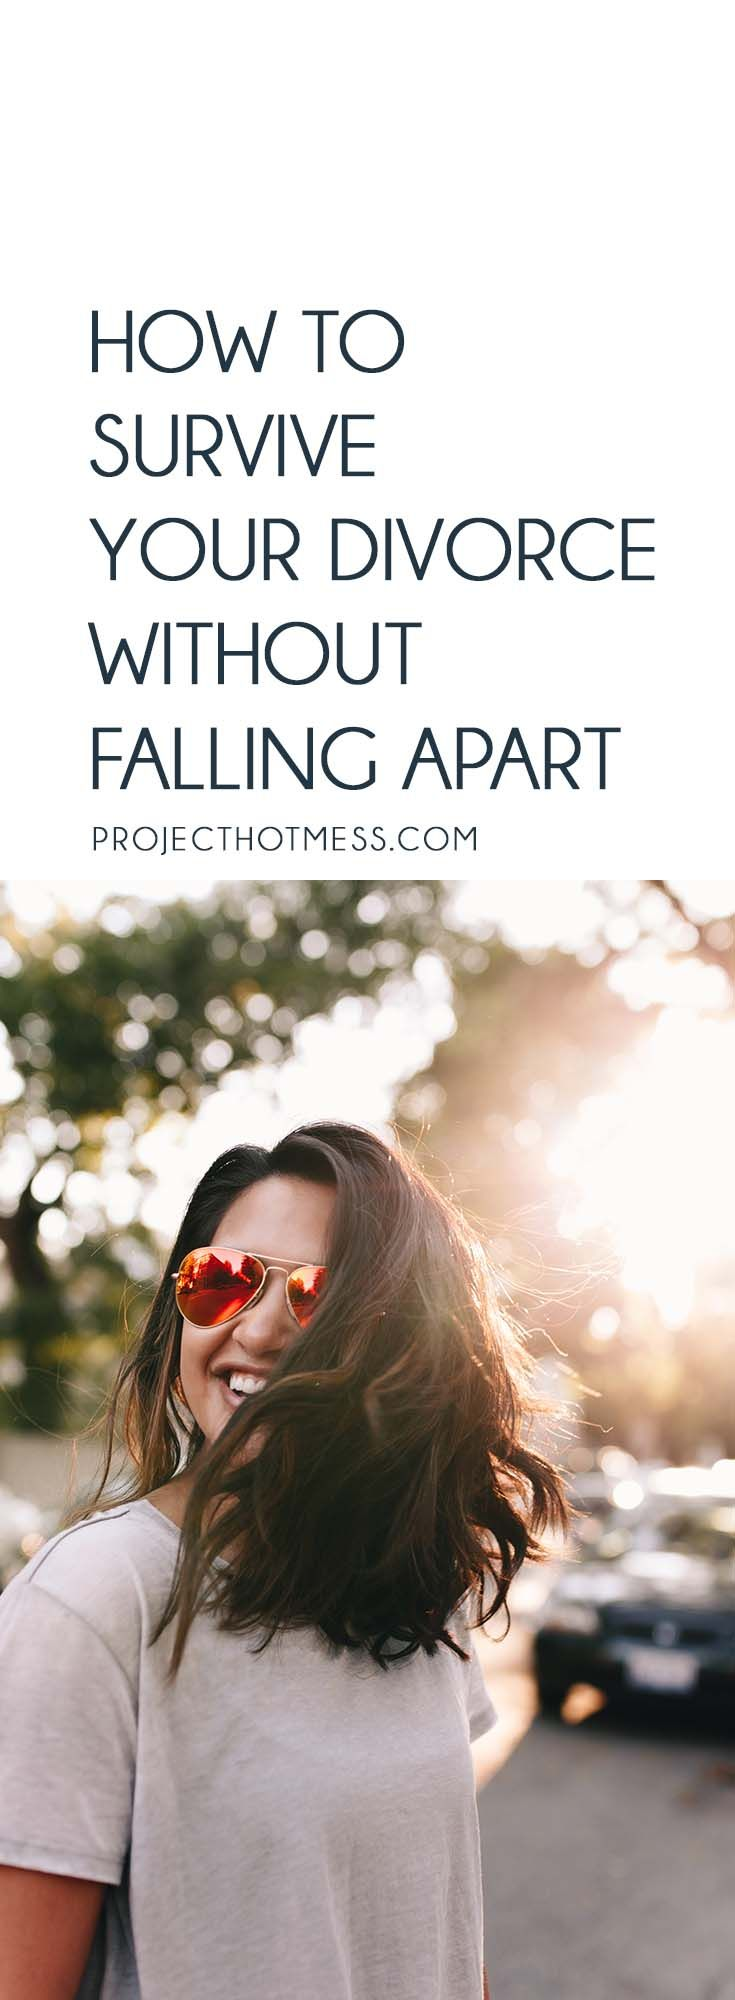 How To Survive Your Divorce Without Falling Apart